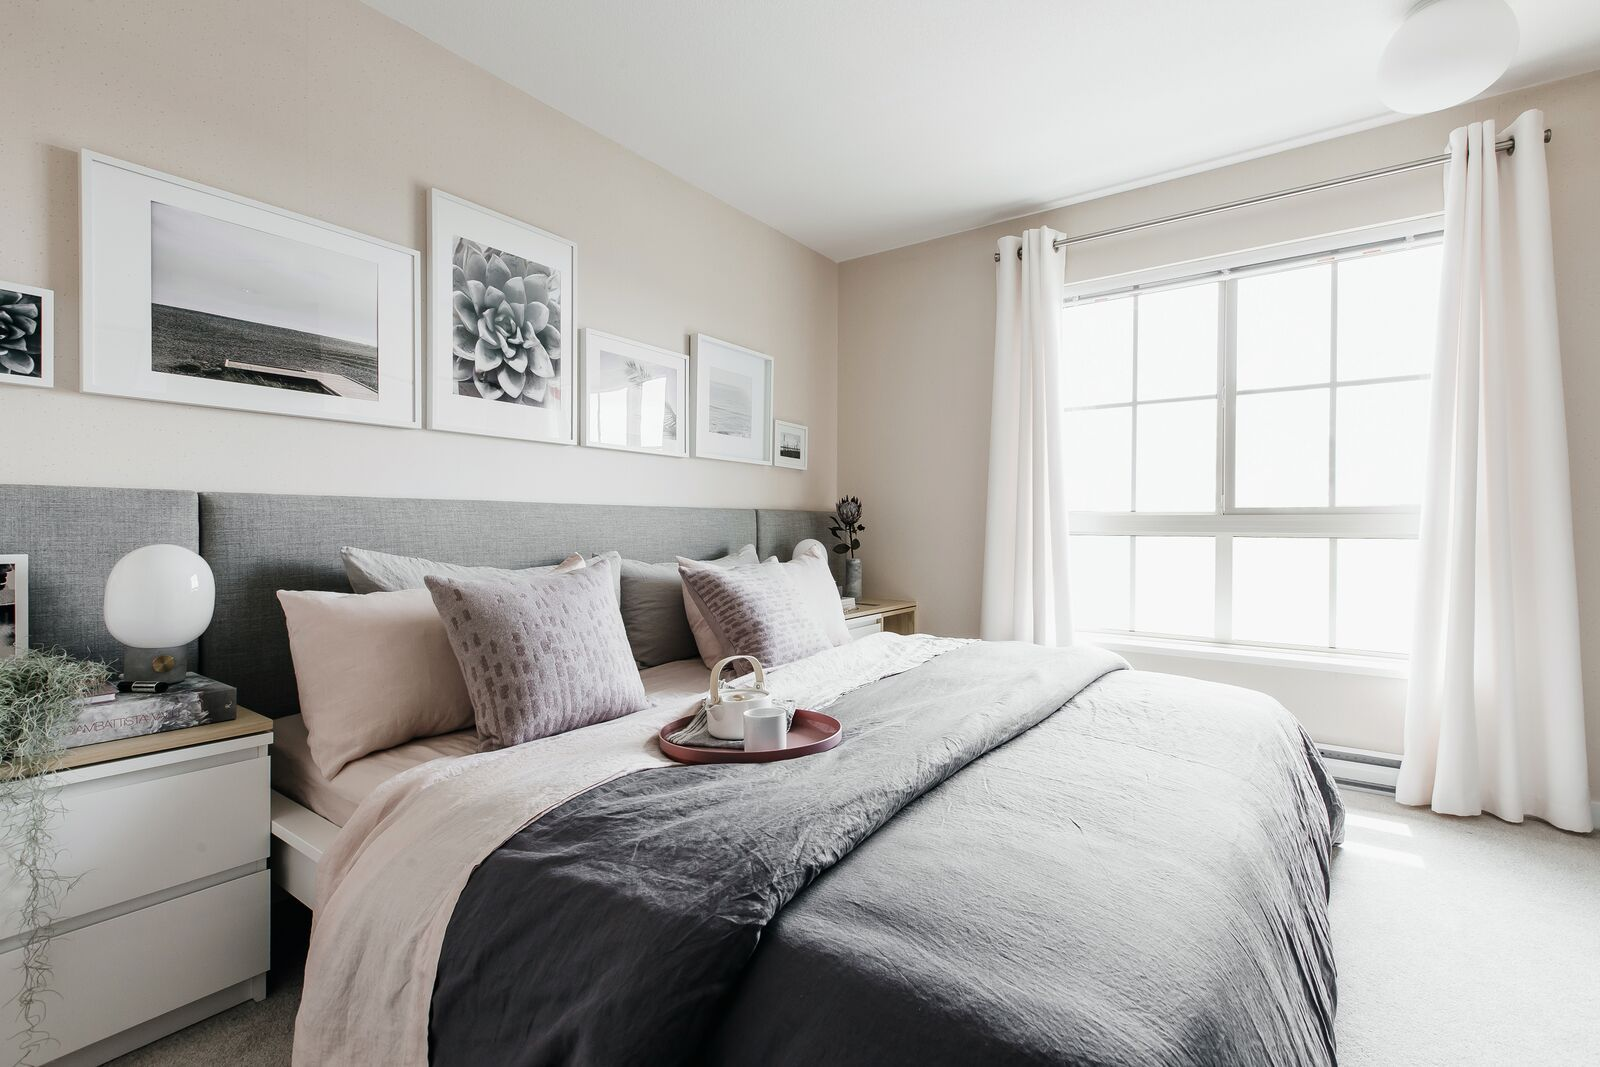 Bed beside window ideas  pin by mosaic homes on hawthorne  bed rowhomes  pinterest